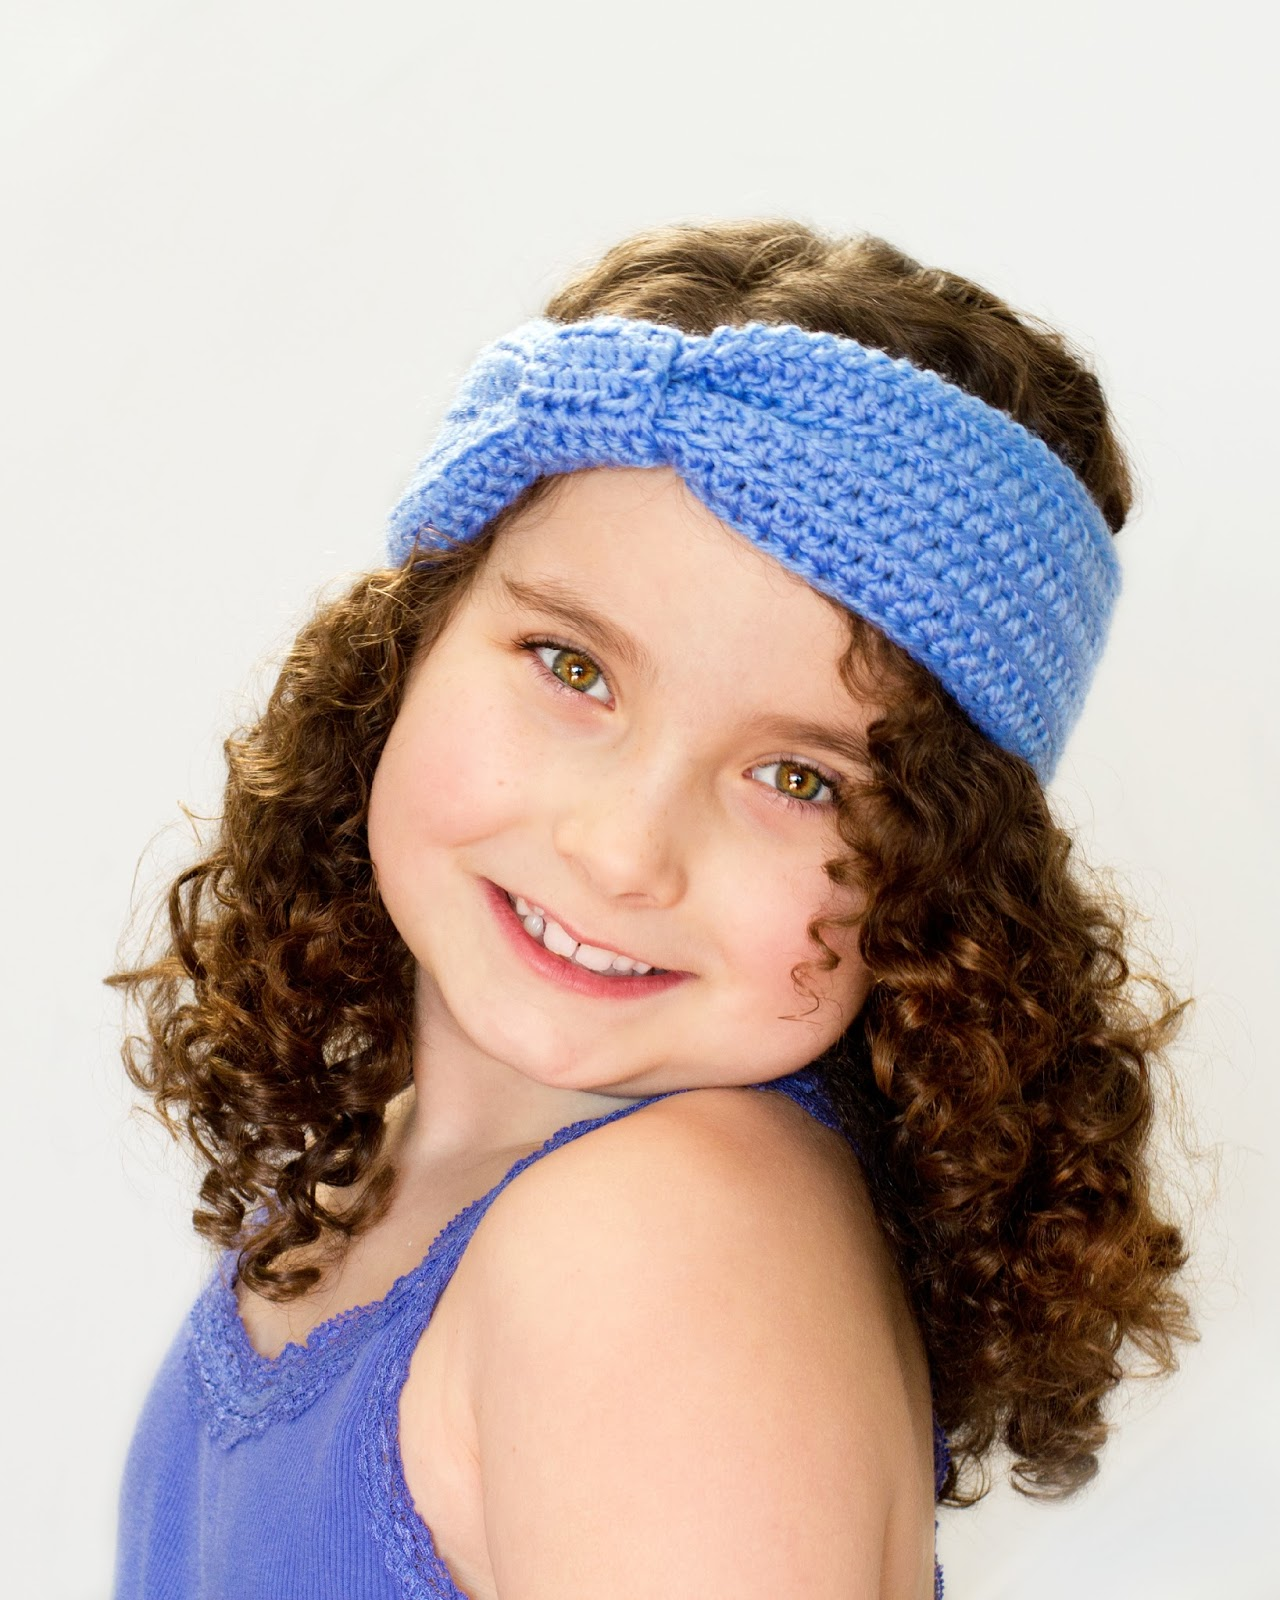 Crocheting A Headband : ... , Crochet, Create: 10 Free Beautiful Boho Headband Crochet Patterns